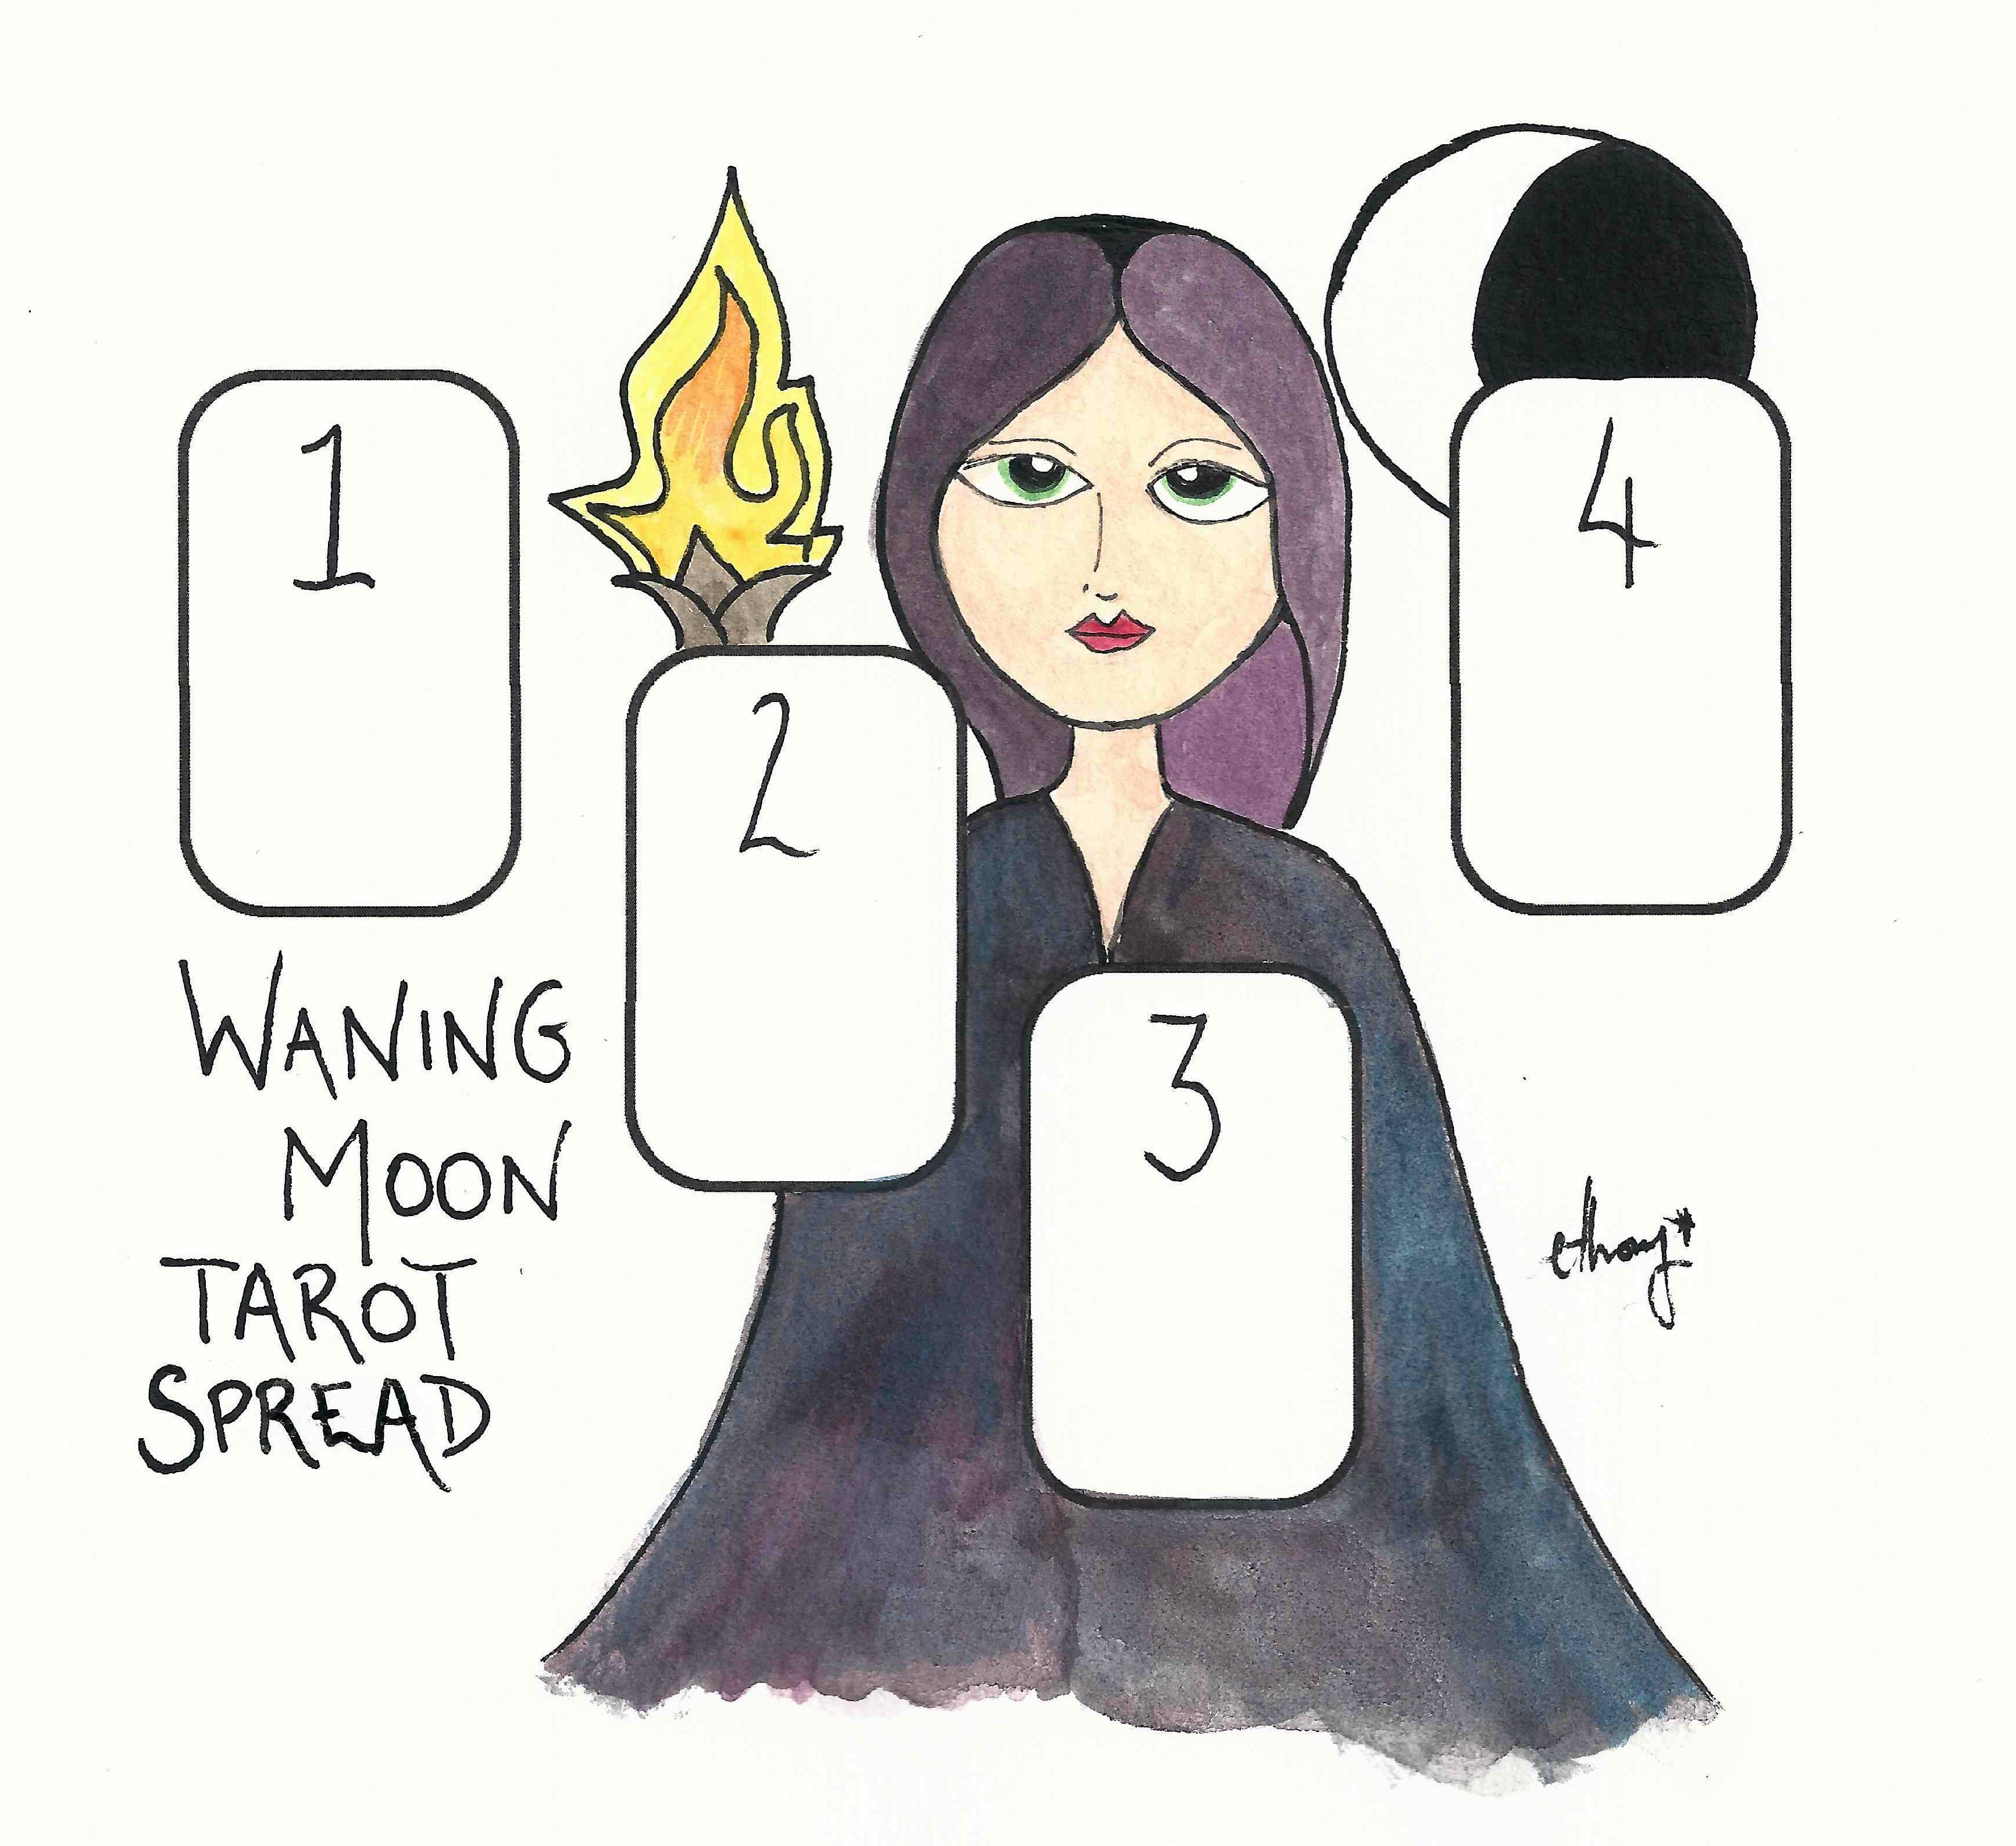 Welcome to the next instalment of my Moon Phase Tarot ...